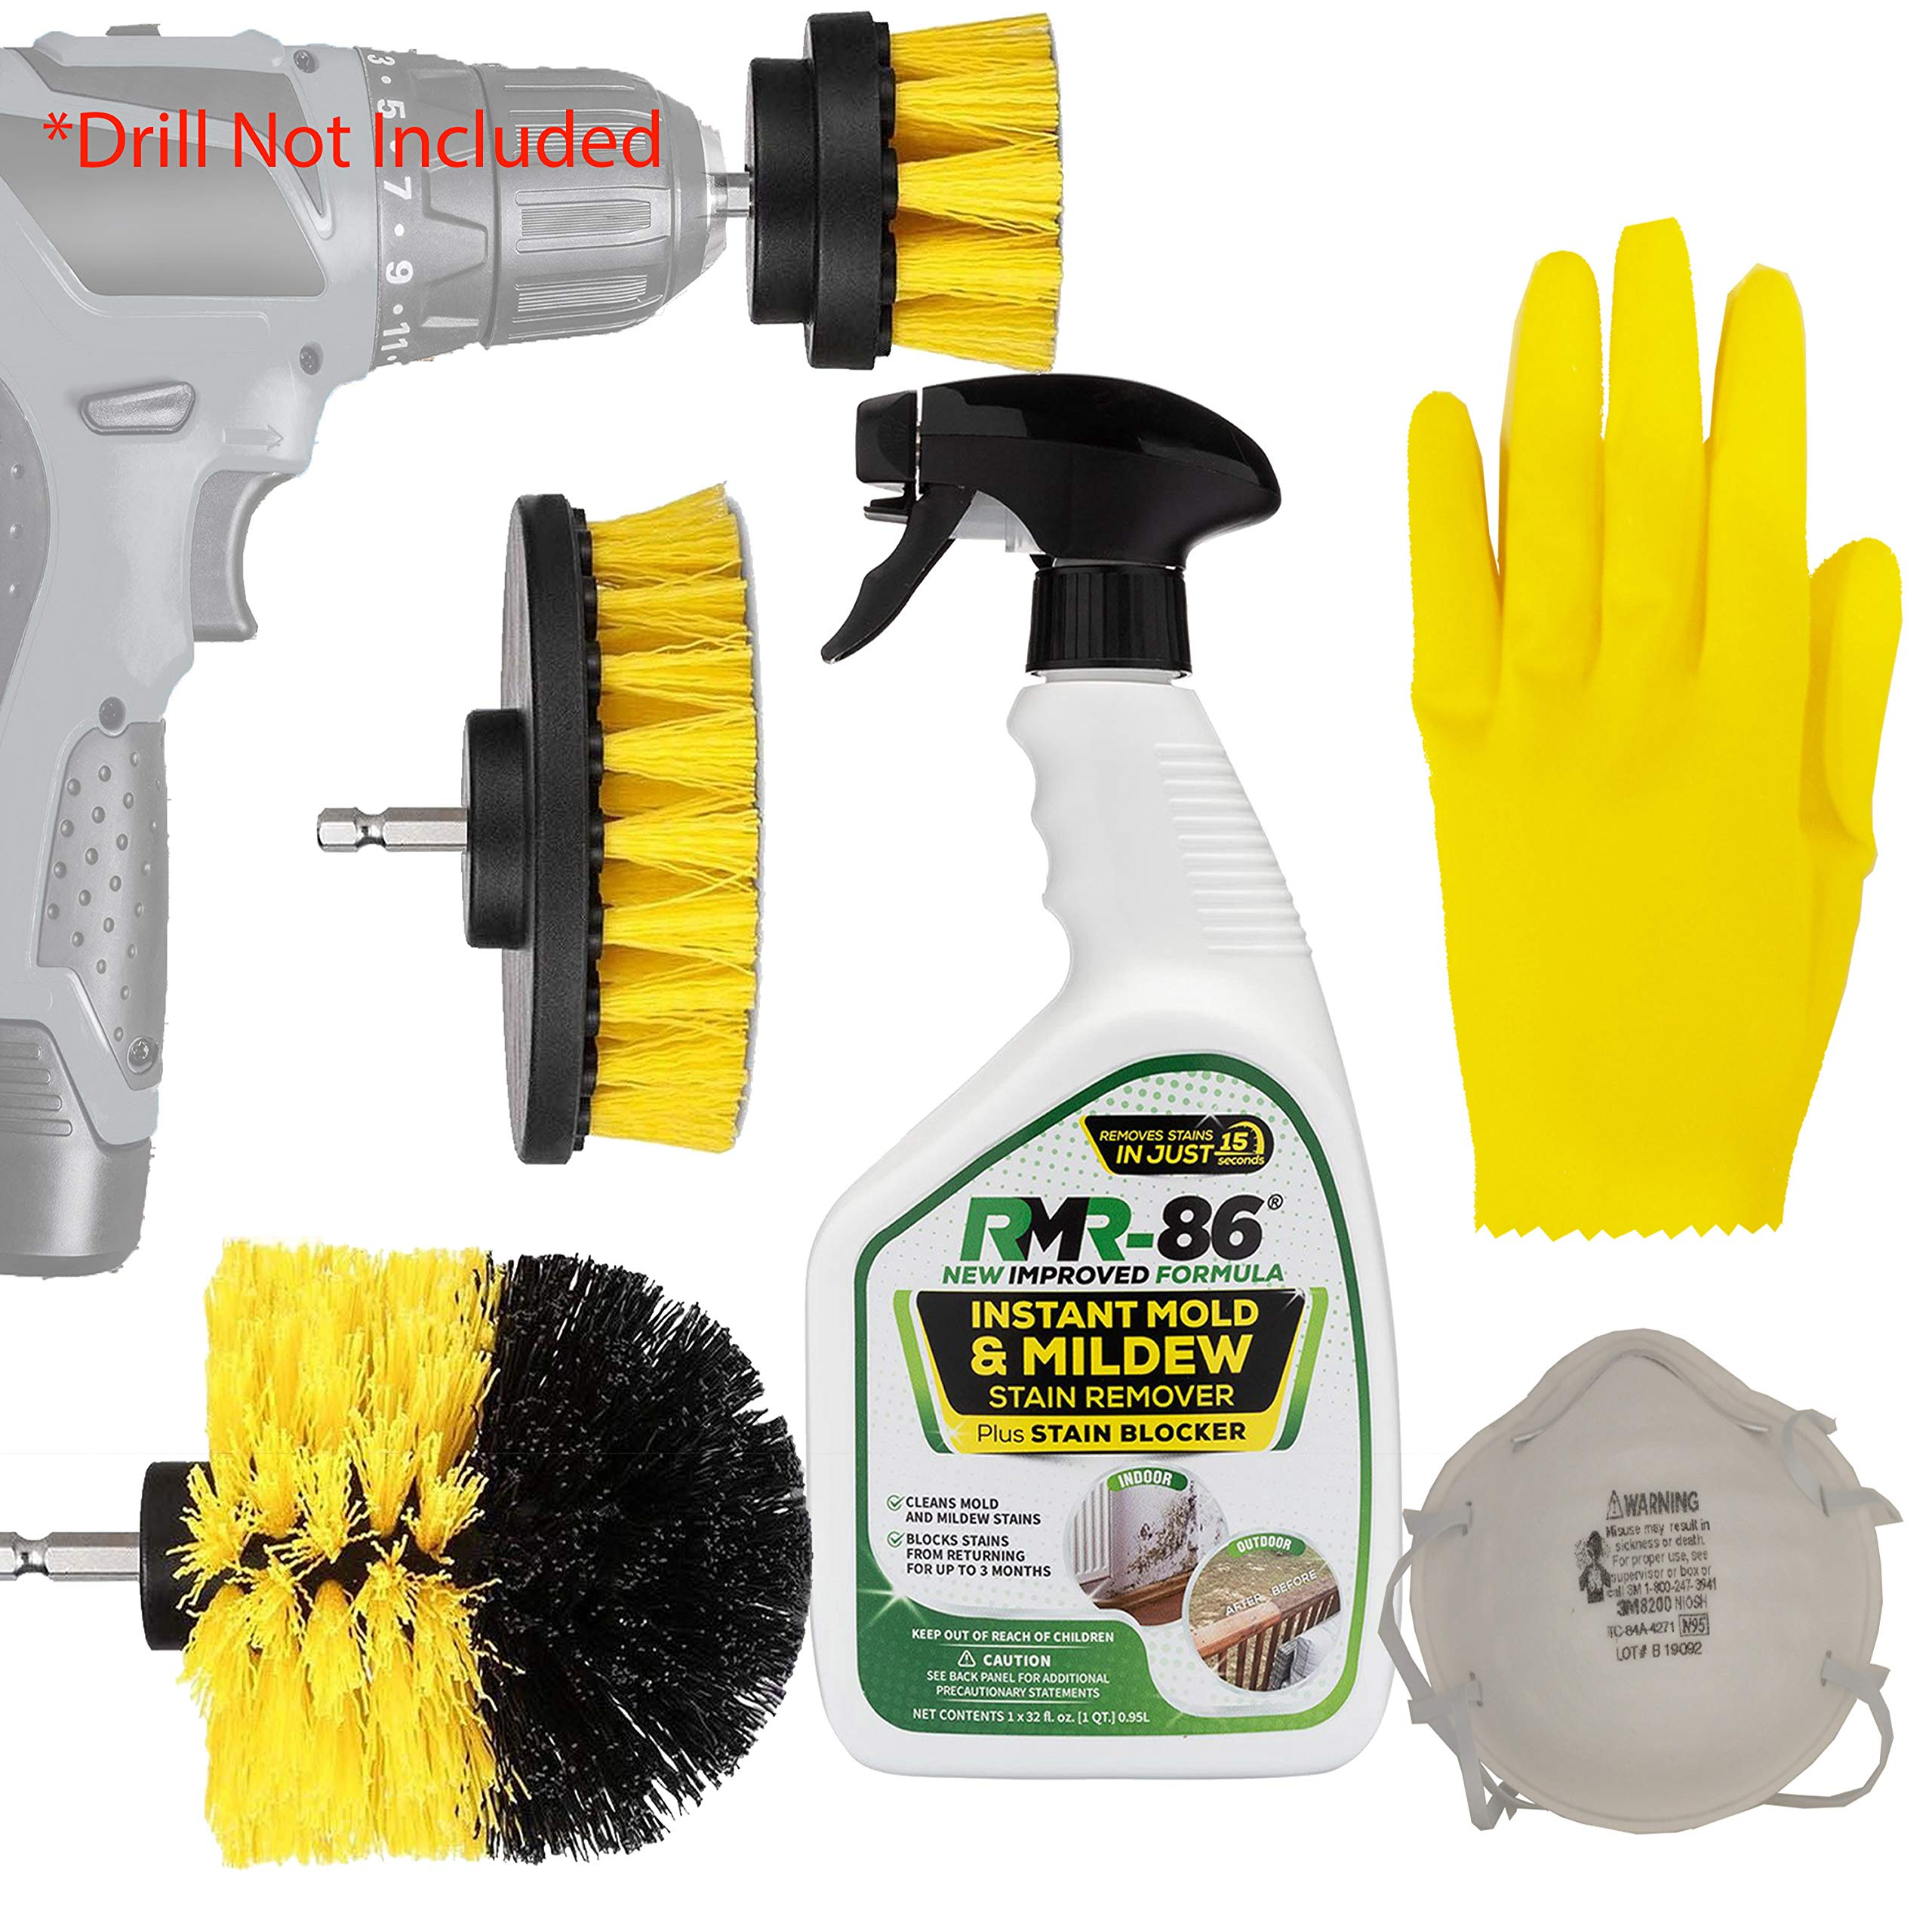 Complete Mold And Mildew Remover Killer Kit: RMR-86 Black Stain control Cleaner Removal Spray, Drill Brush Power Scrubber Attachment Set, 1 3M N95 Particle respirator Mask, 1 Thick Medium Latex Gloves by HeroFiber